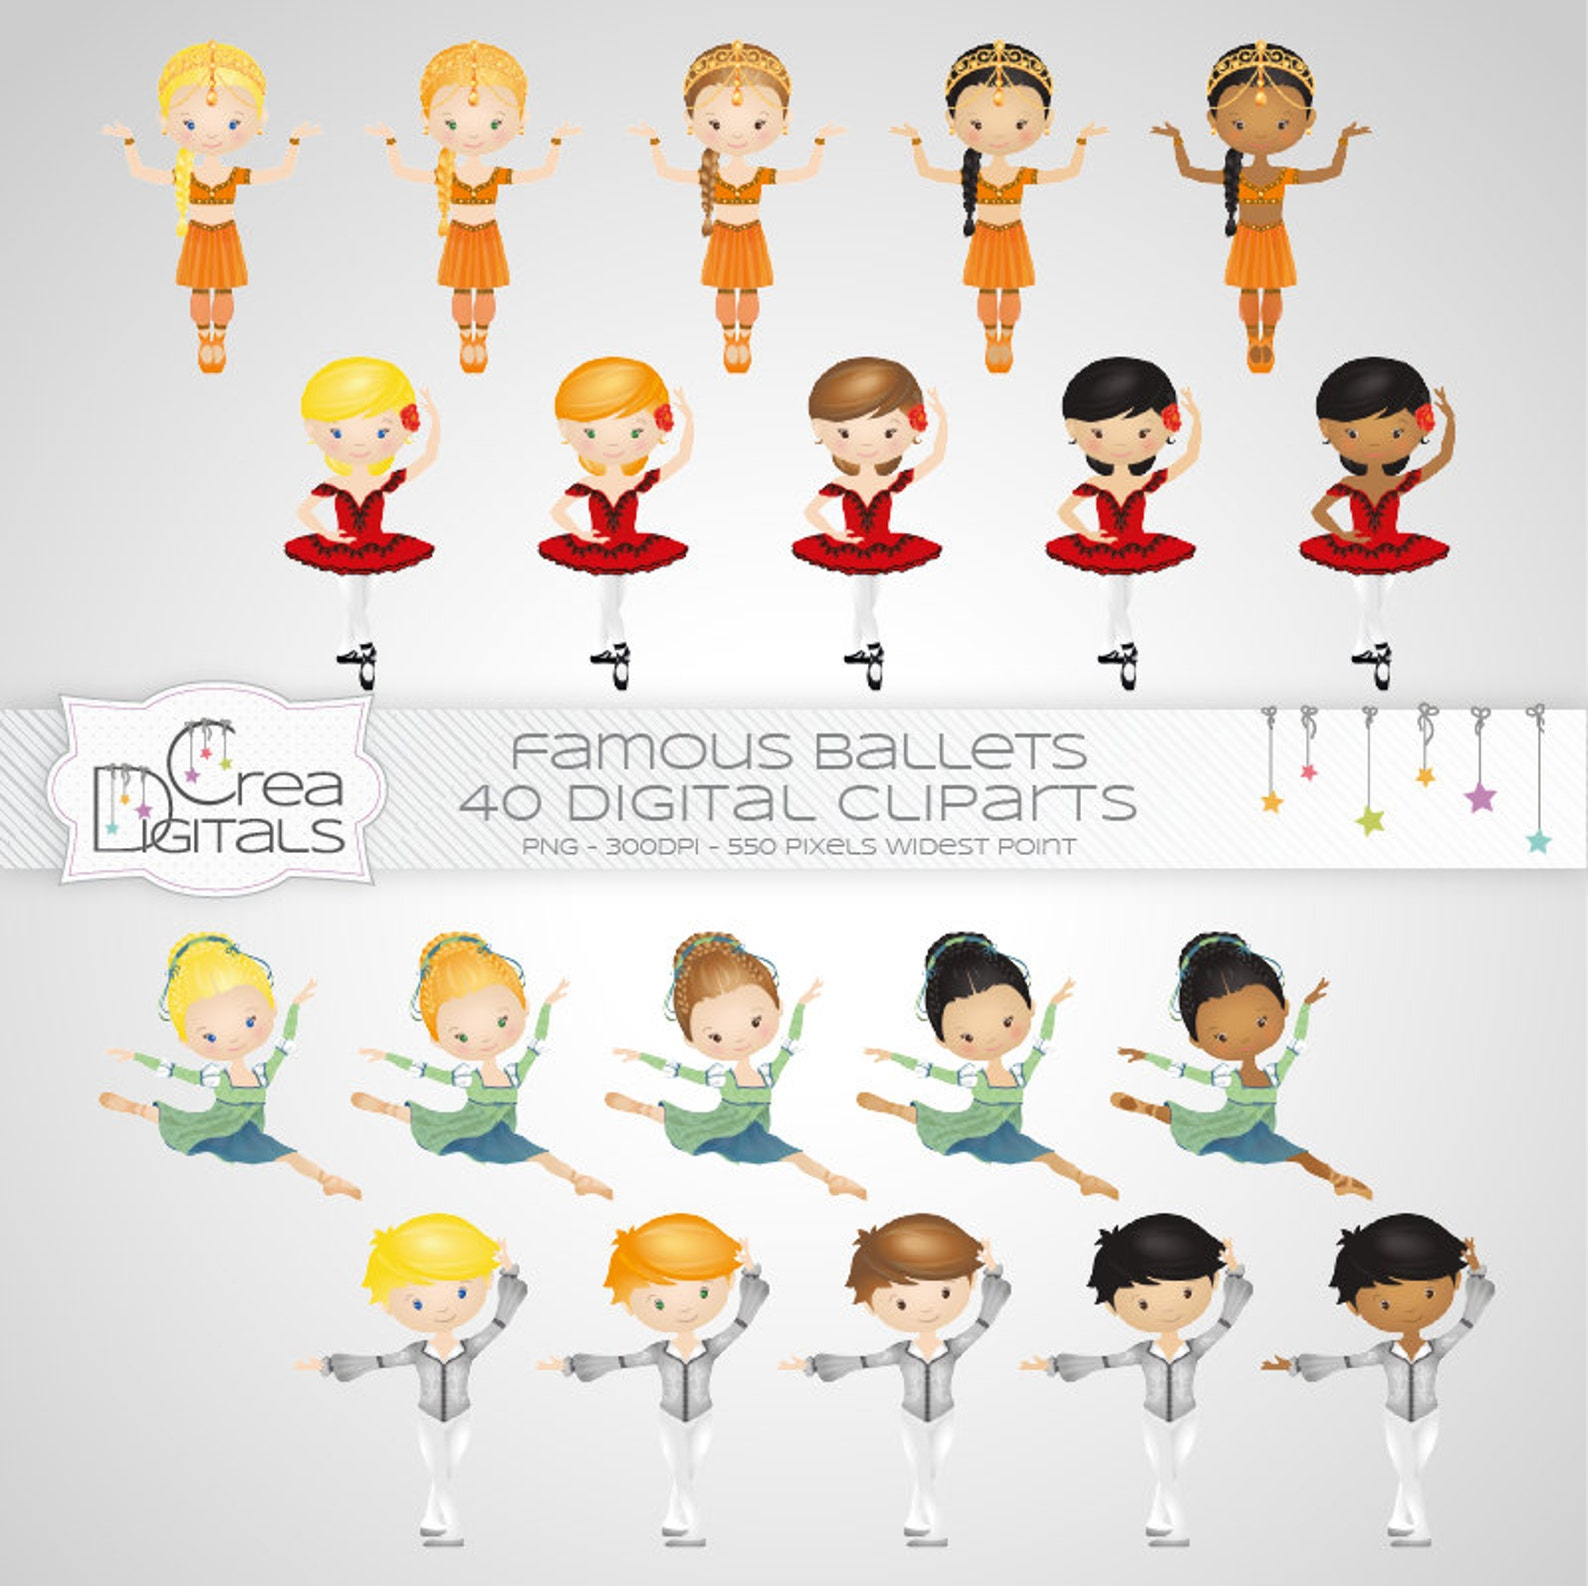 ballerina cliparts - famous ballets - 40 digital cliparts - instant download